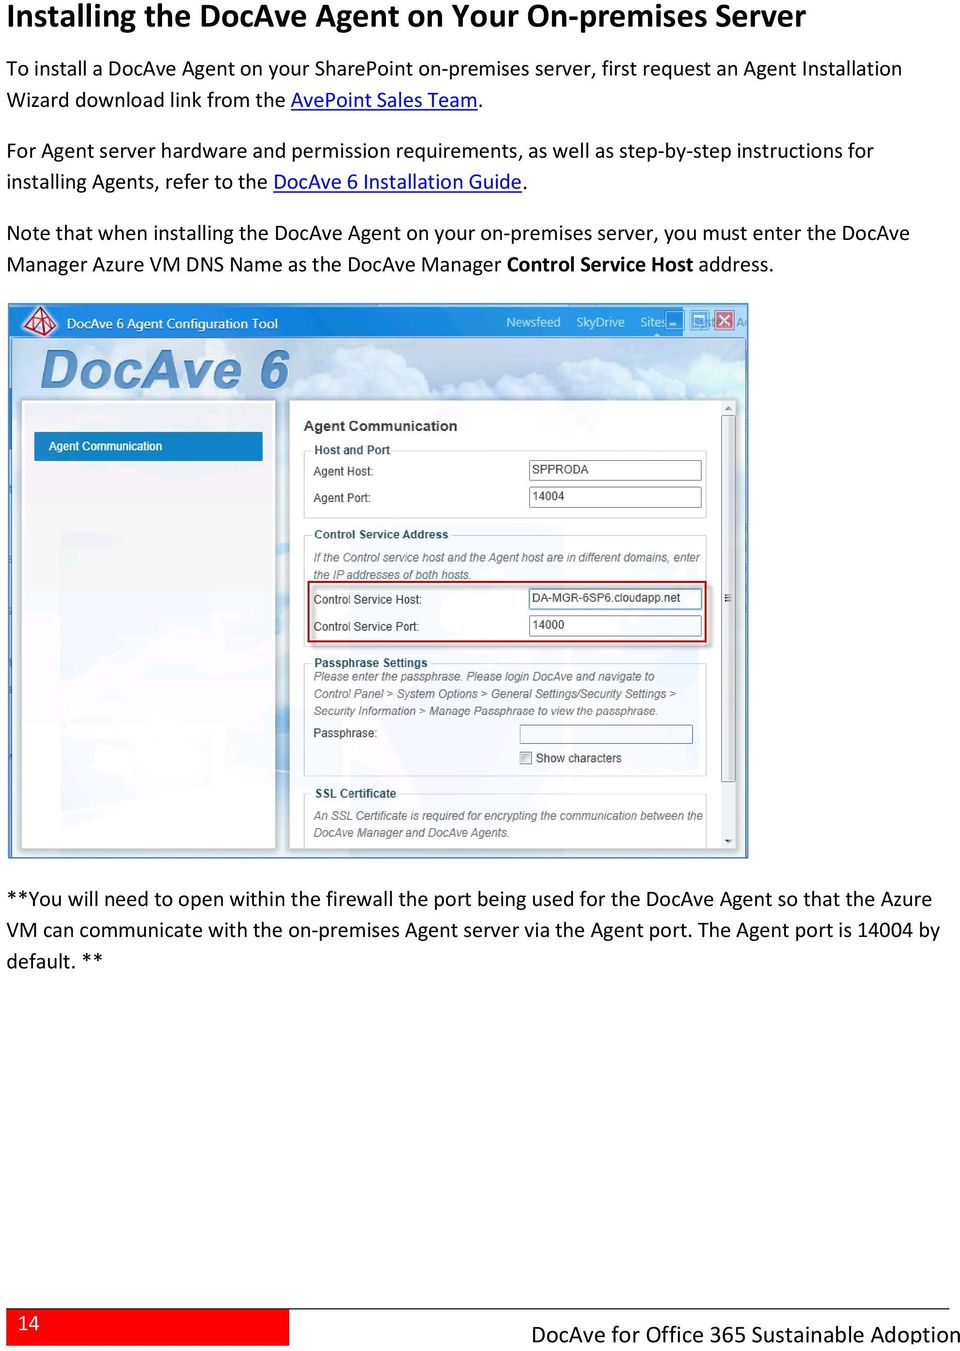 Note that when installing the DocAve Agent on your on-premises server, you must enter the DocAve Manager Azure VM DNS Name as the DocAve Manager Control Service Host address.